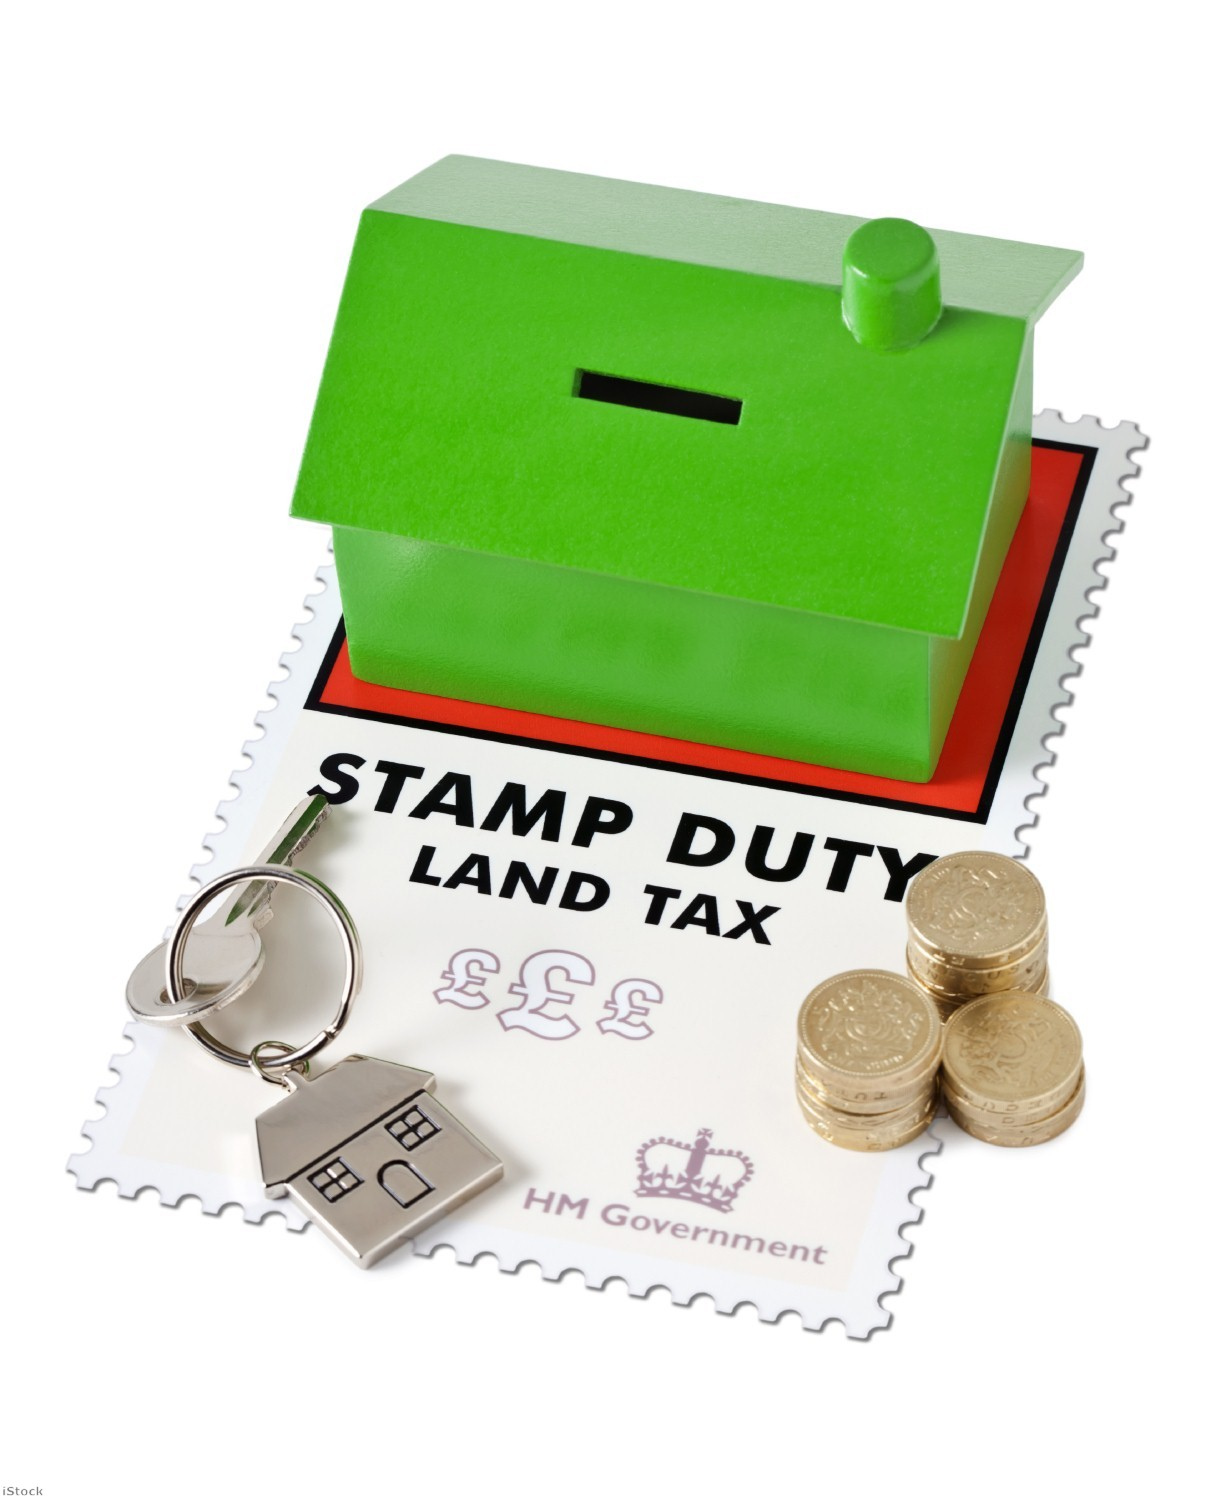 Mortgage and Stamp Duty issues affect more than 1 in 10 buyers